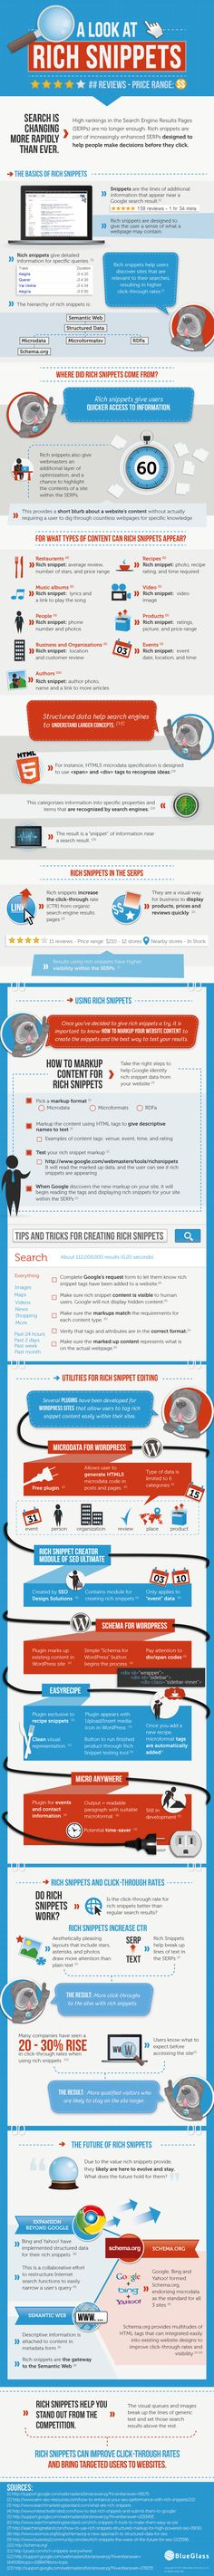 A Visual Guide to Rich Snippets